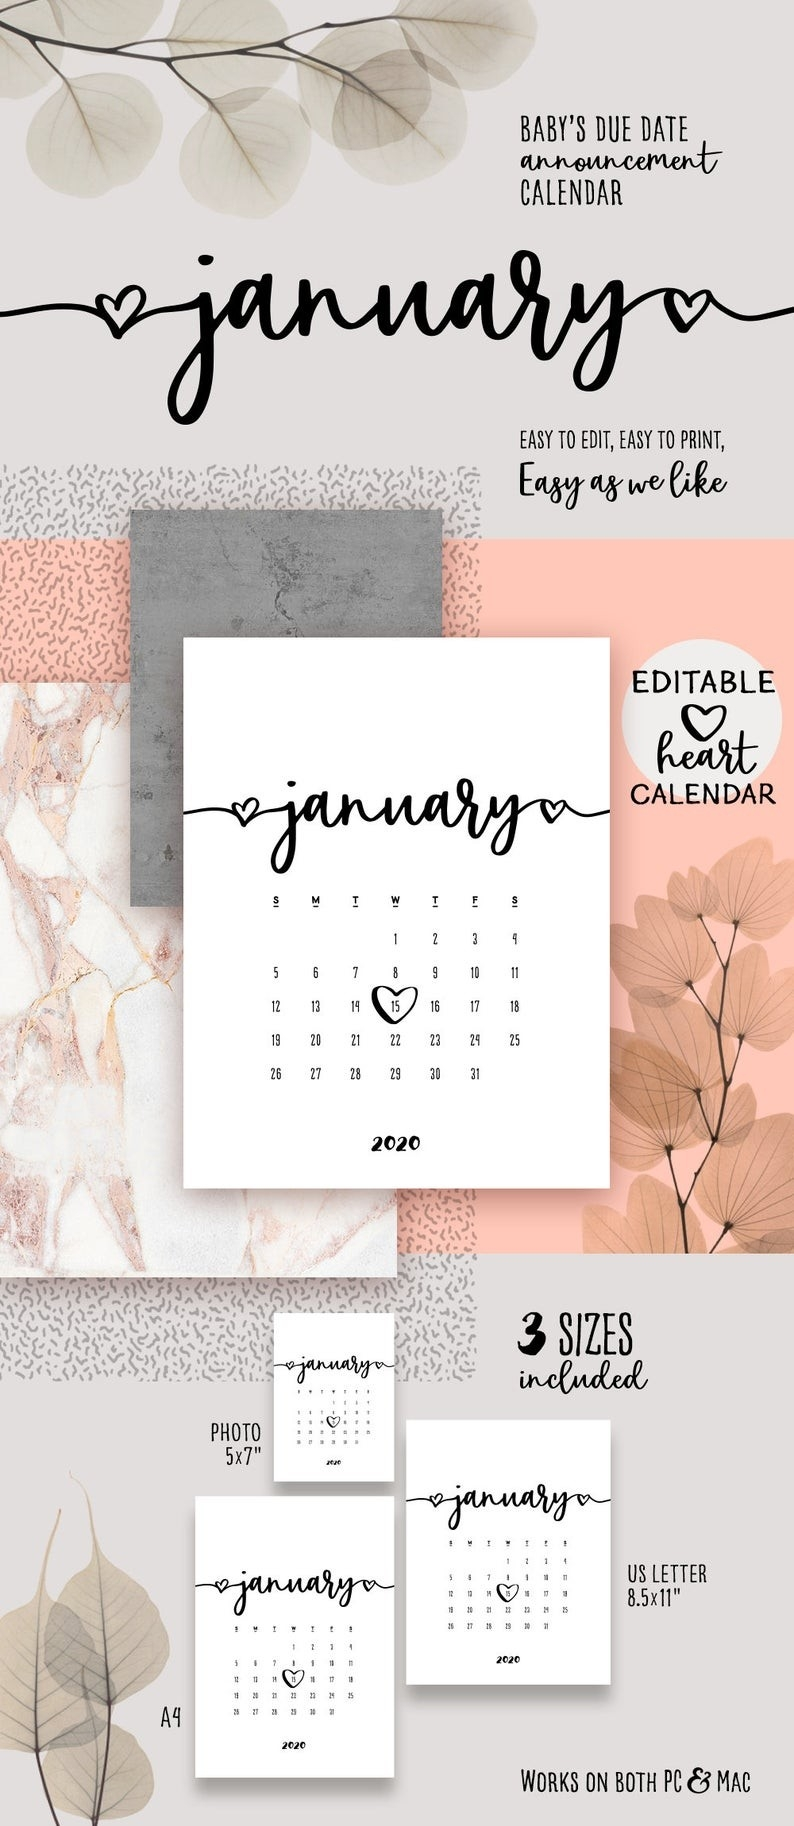 January 2020 Pregnancy Printable Calendar Lovely Baby Due Date Announcement  Calendar Pdf Reveal Baby Announce Birthday Printable Calendar-January 2020 Calendar Baby Announcement